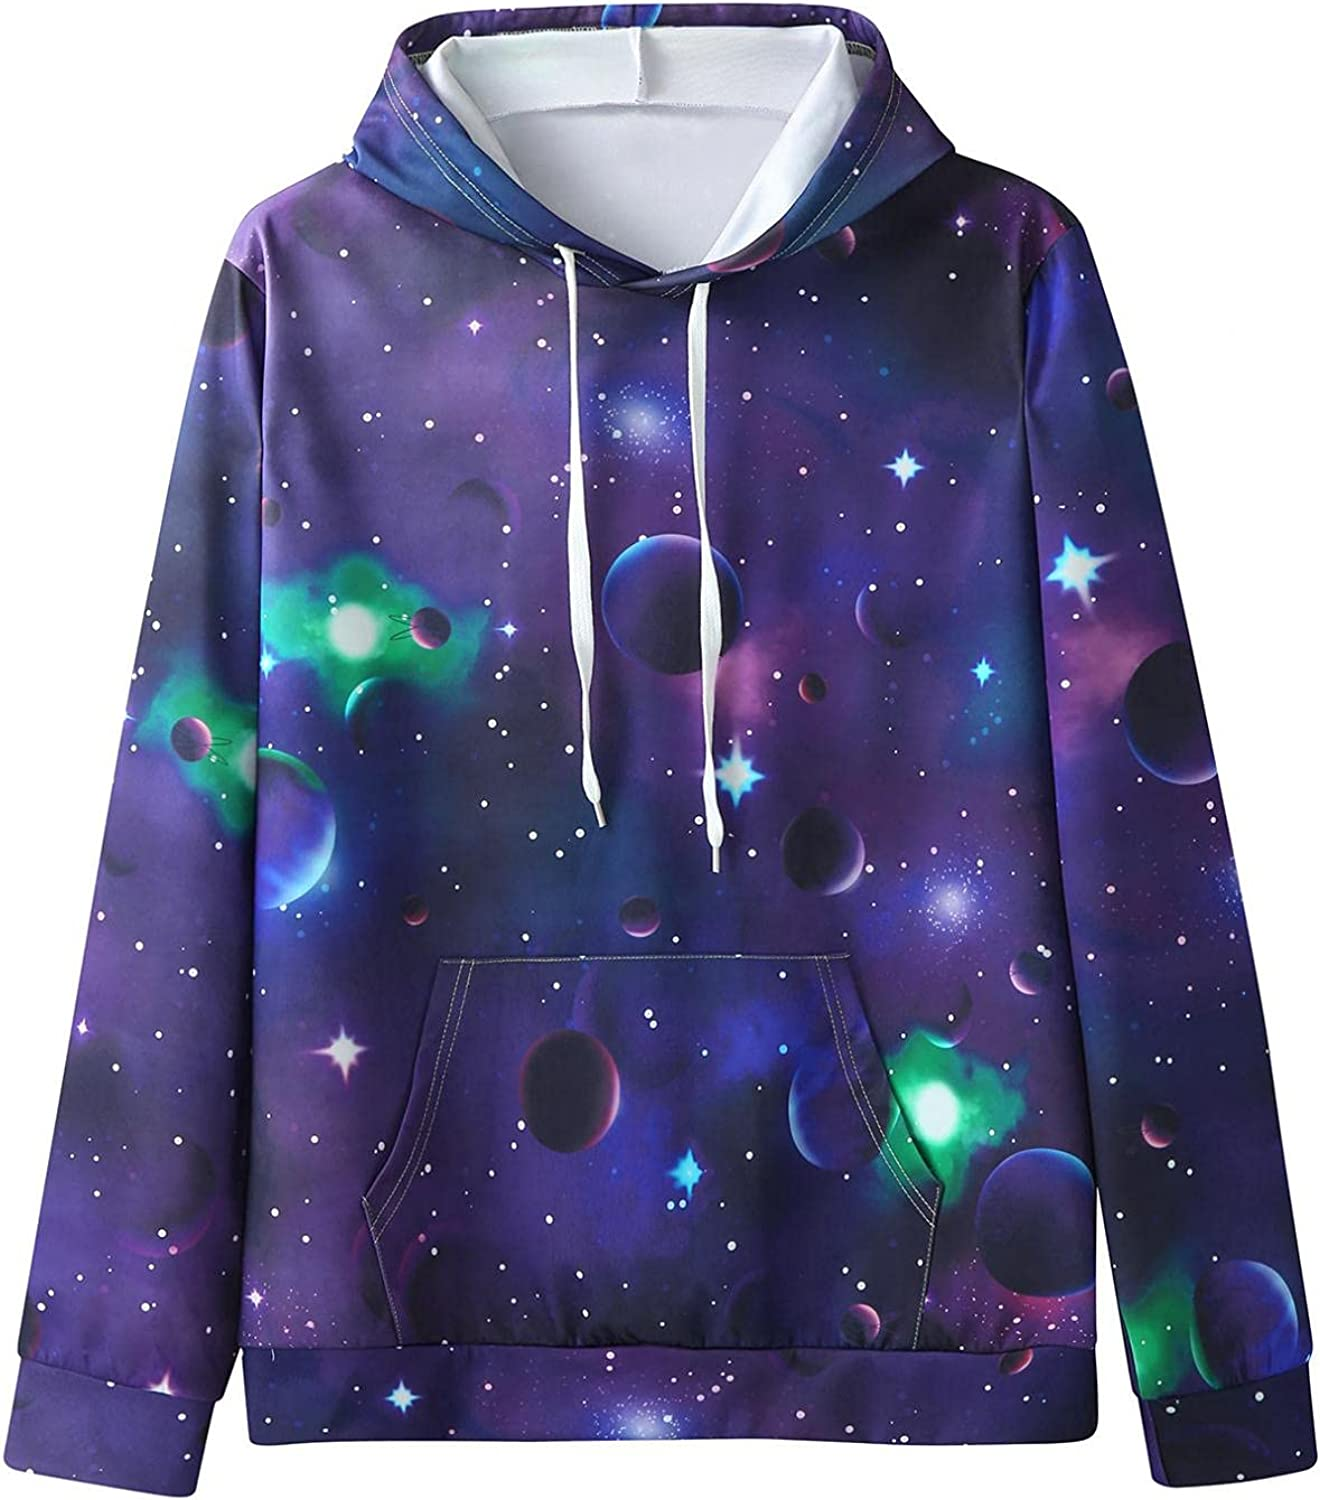 Qsctys Sweatshirts for Men Hoodie - Lightweight Tall 3D Print Tie Dye Long Sleeve Pullover Fashion Hoodies with Pocket